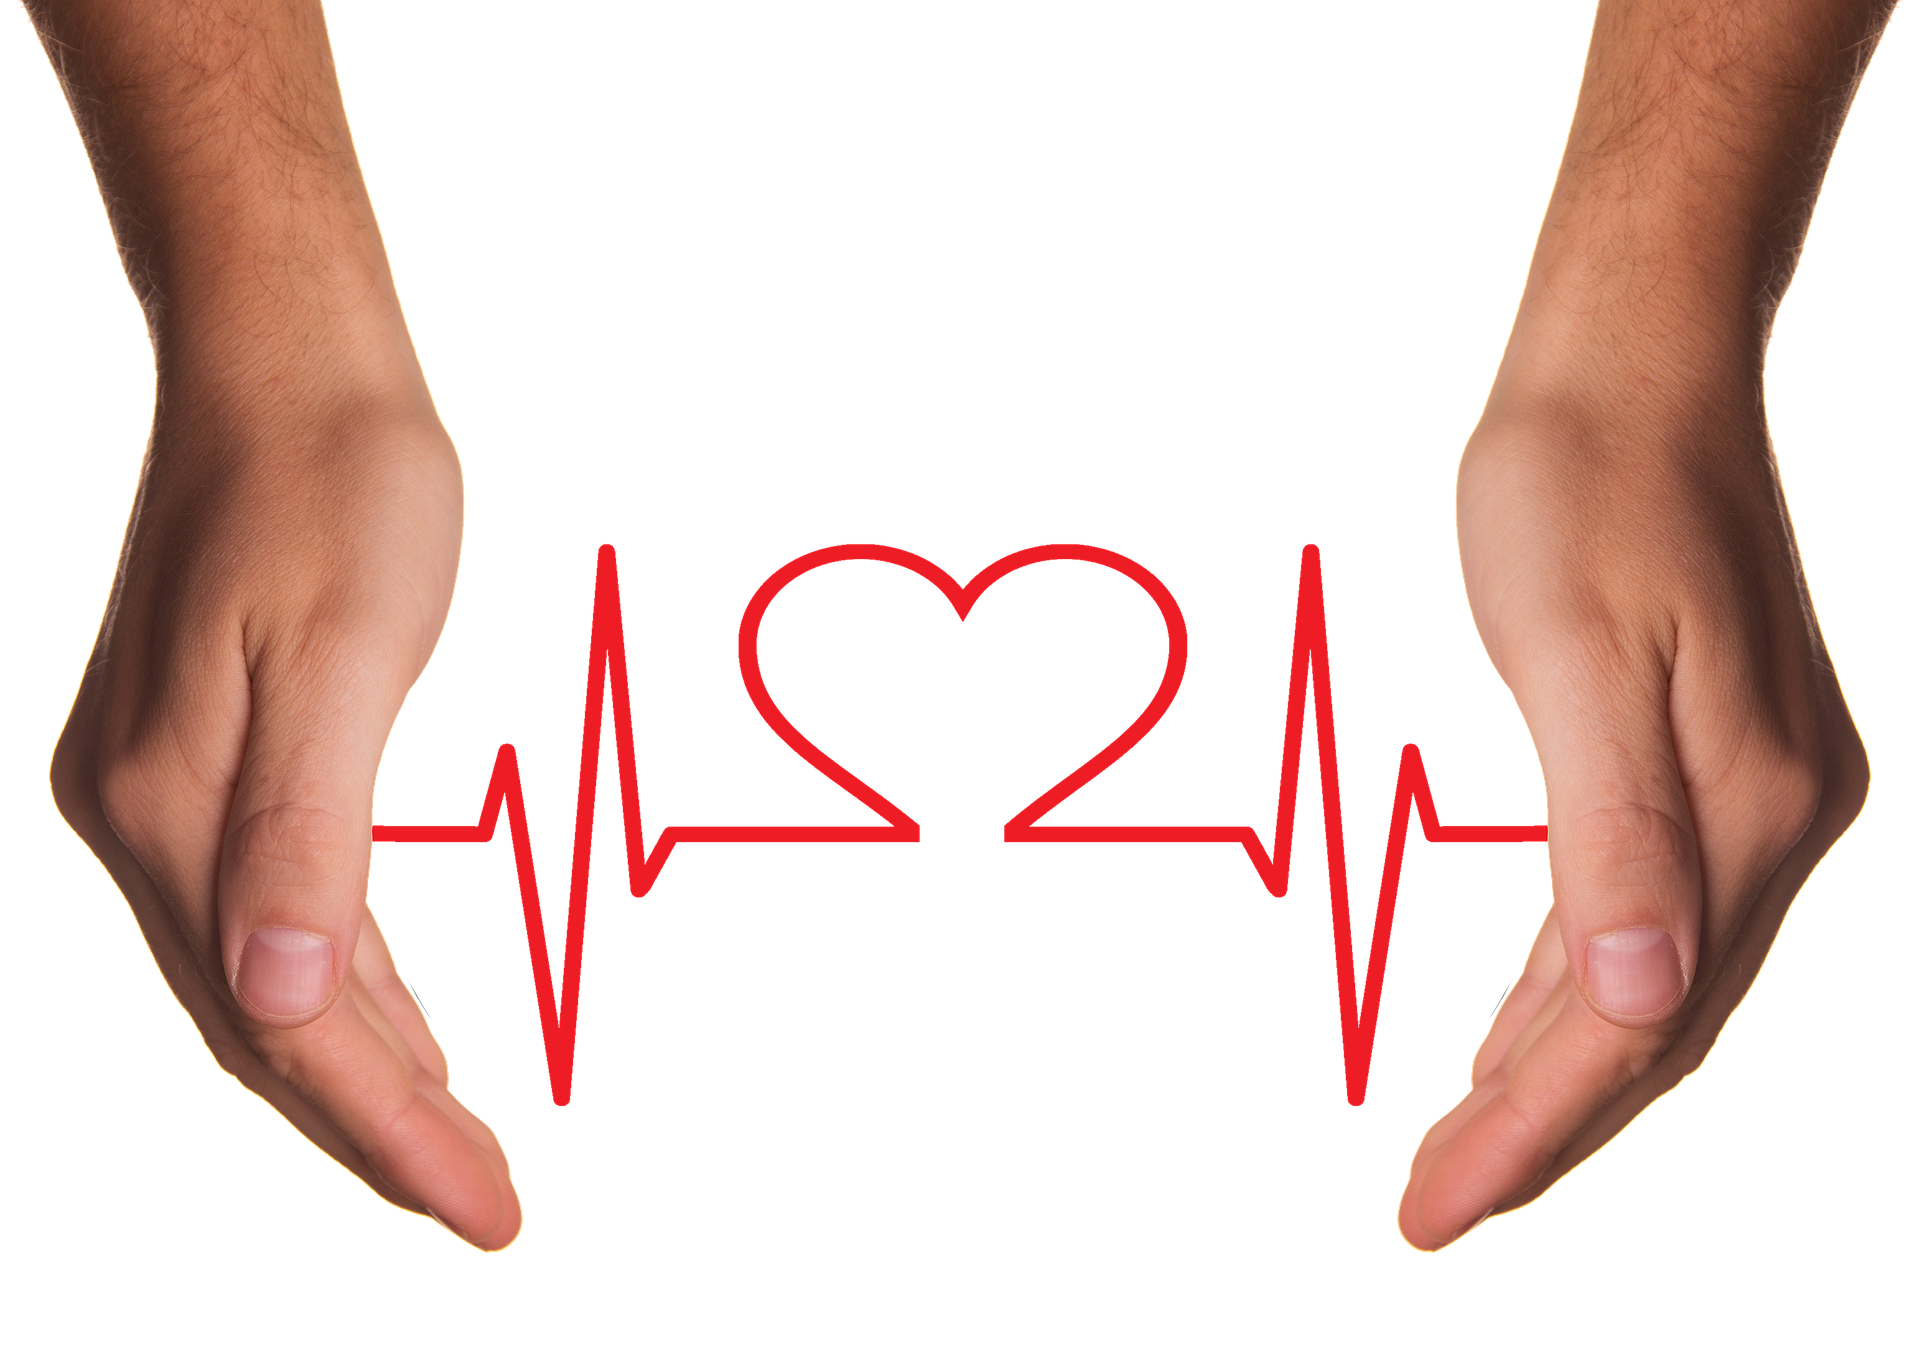 10 Signs and Symptoms of Rheumatic Heart Disease: Are You at Risk?